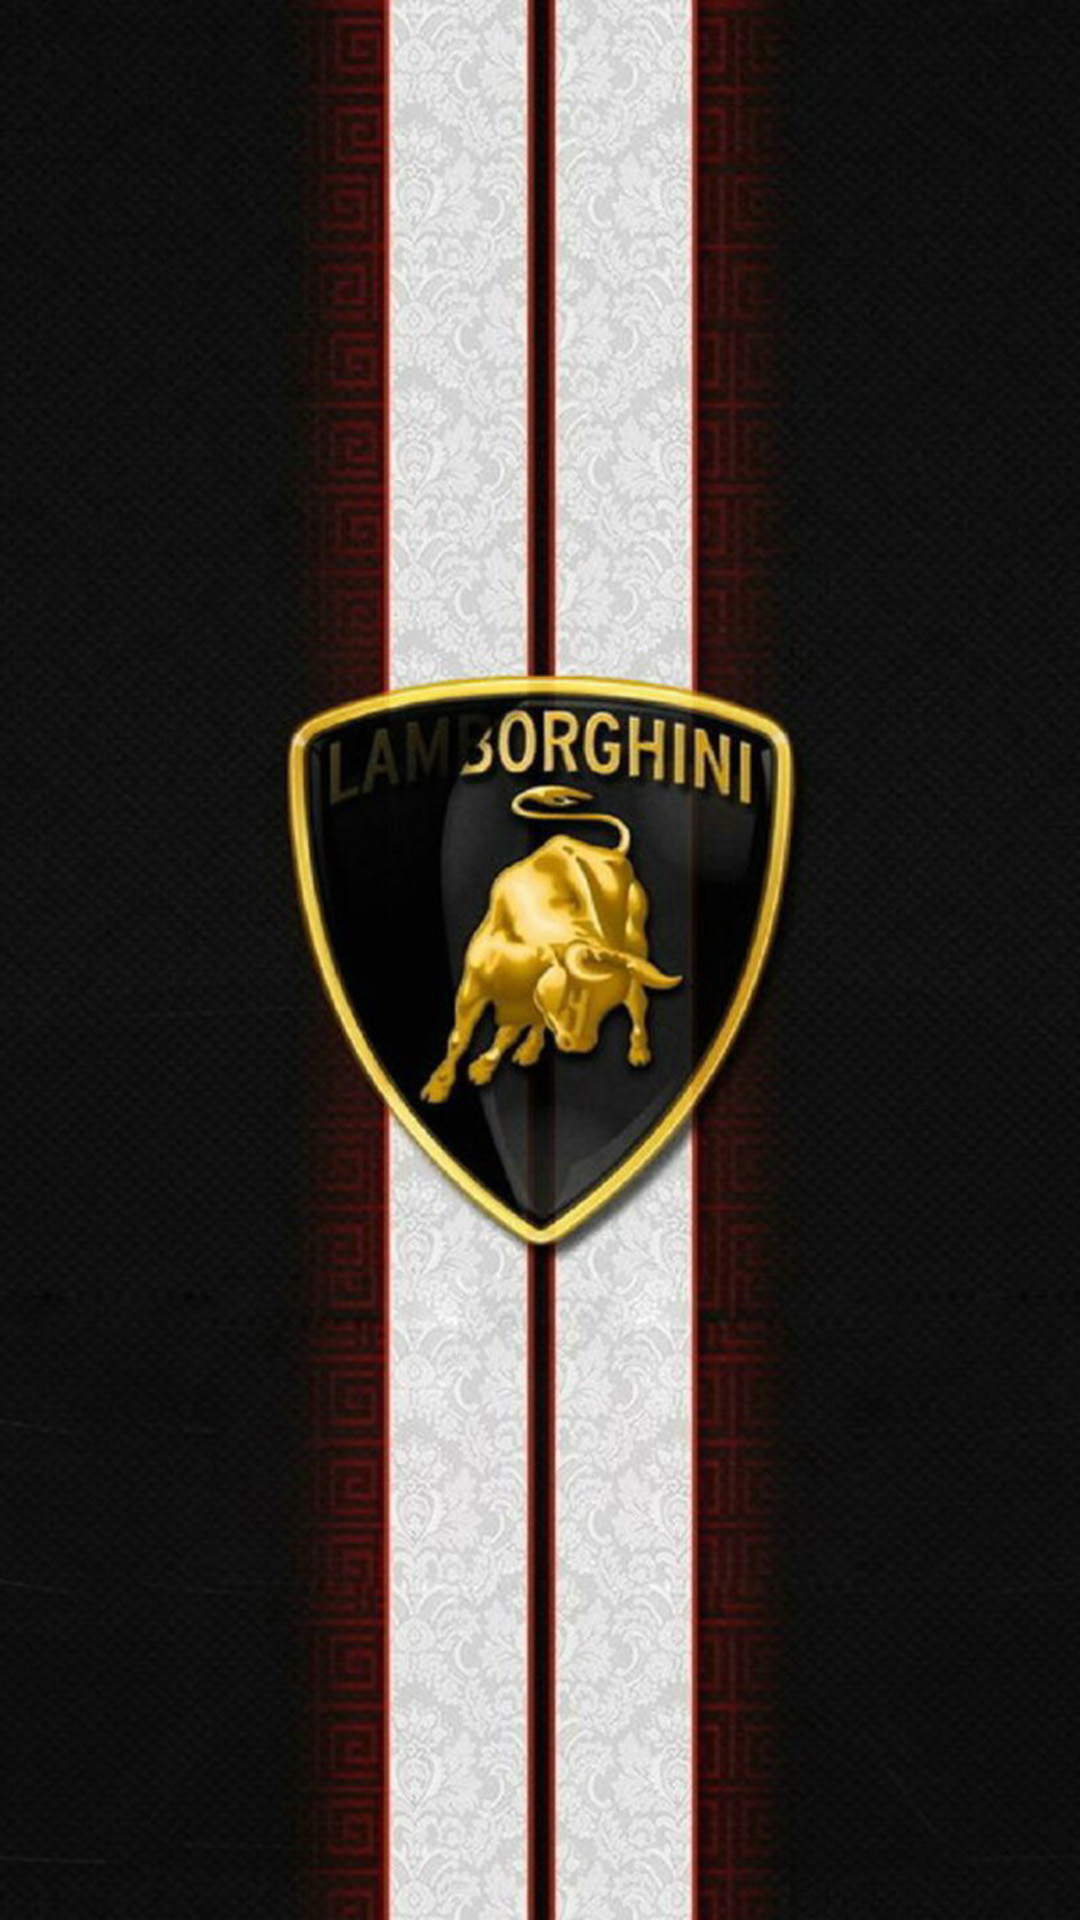 Lamborghini logo 03 Nexus 5 Wallpapers Nexus 5 wallpapers and 1080x1920